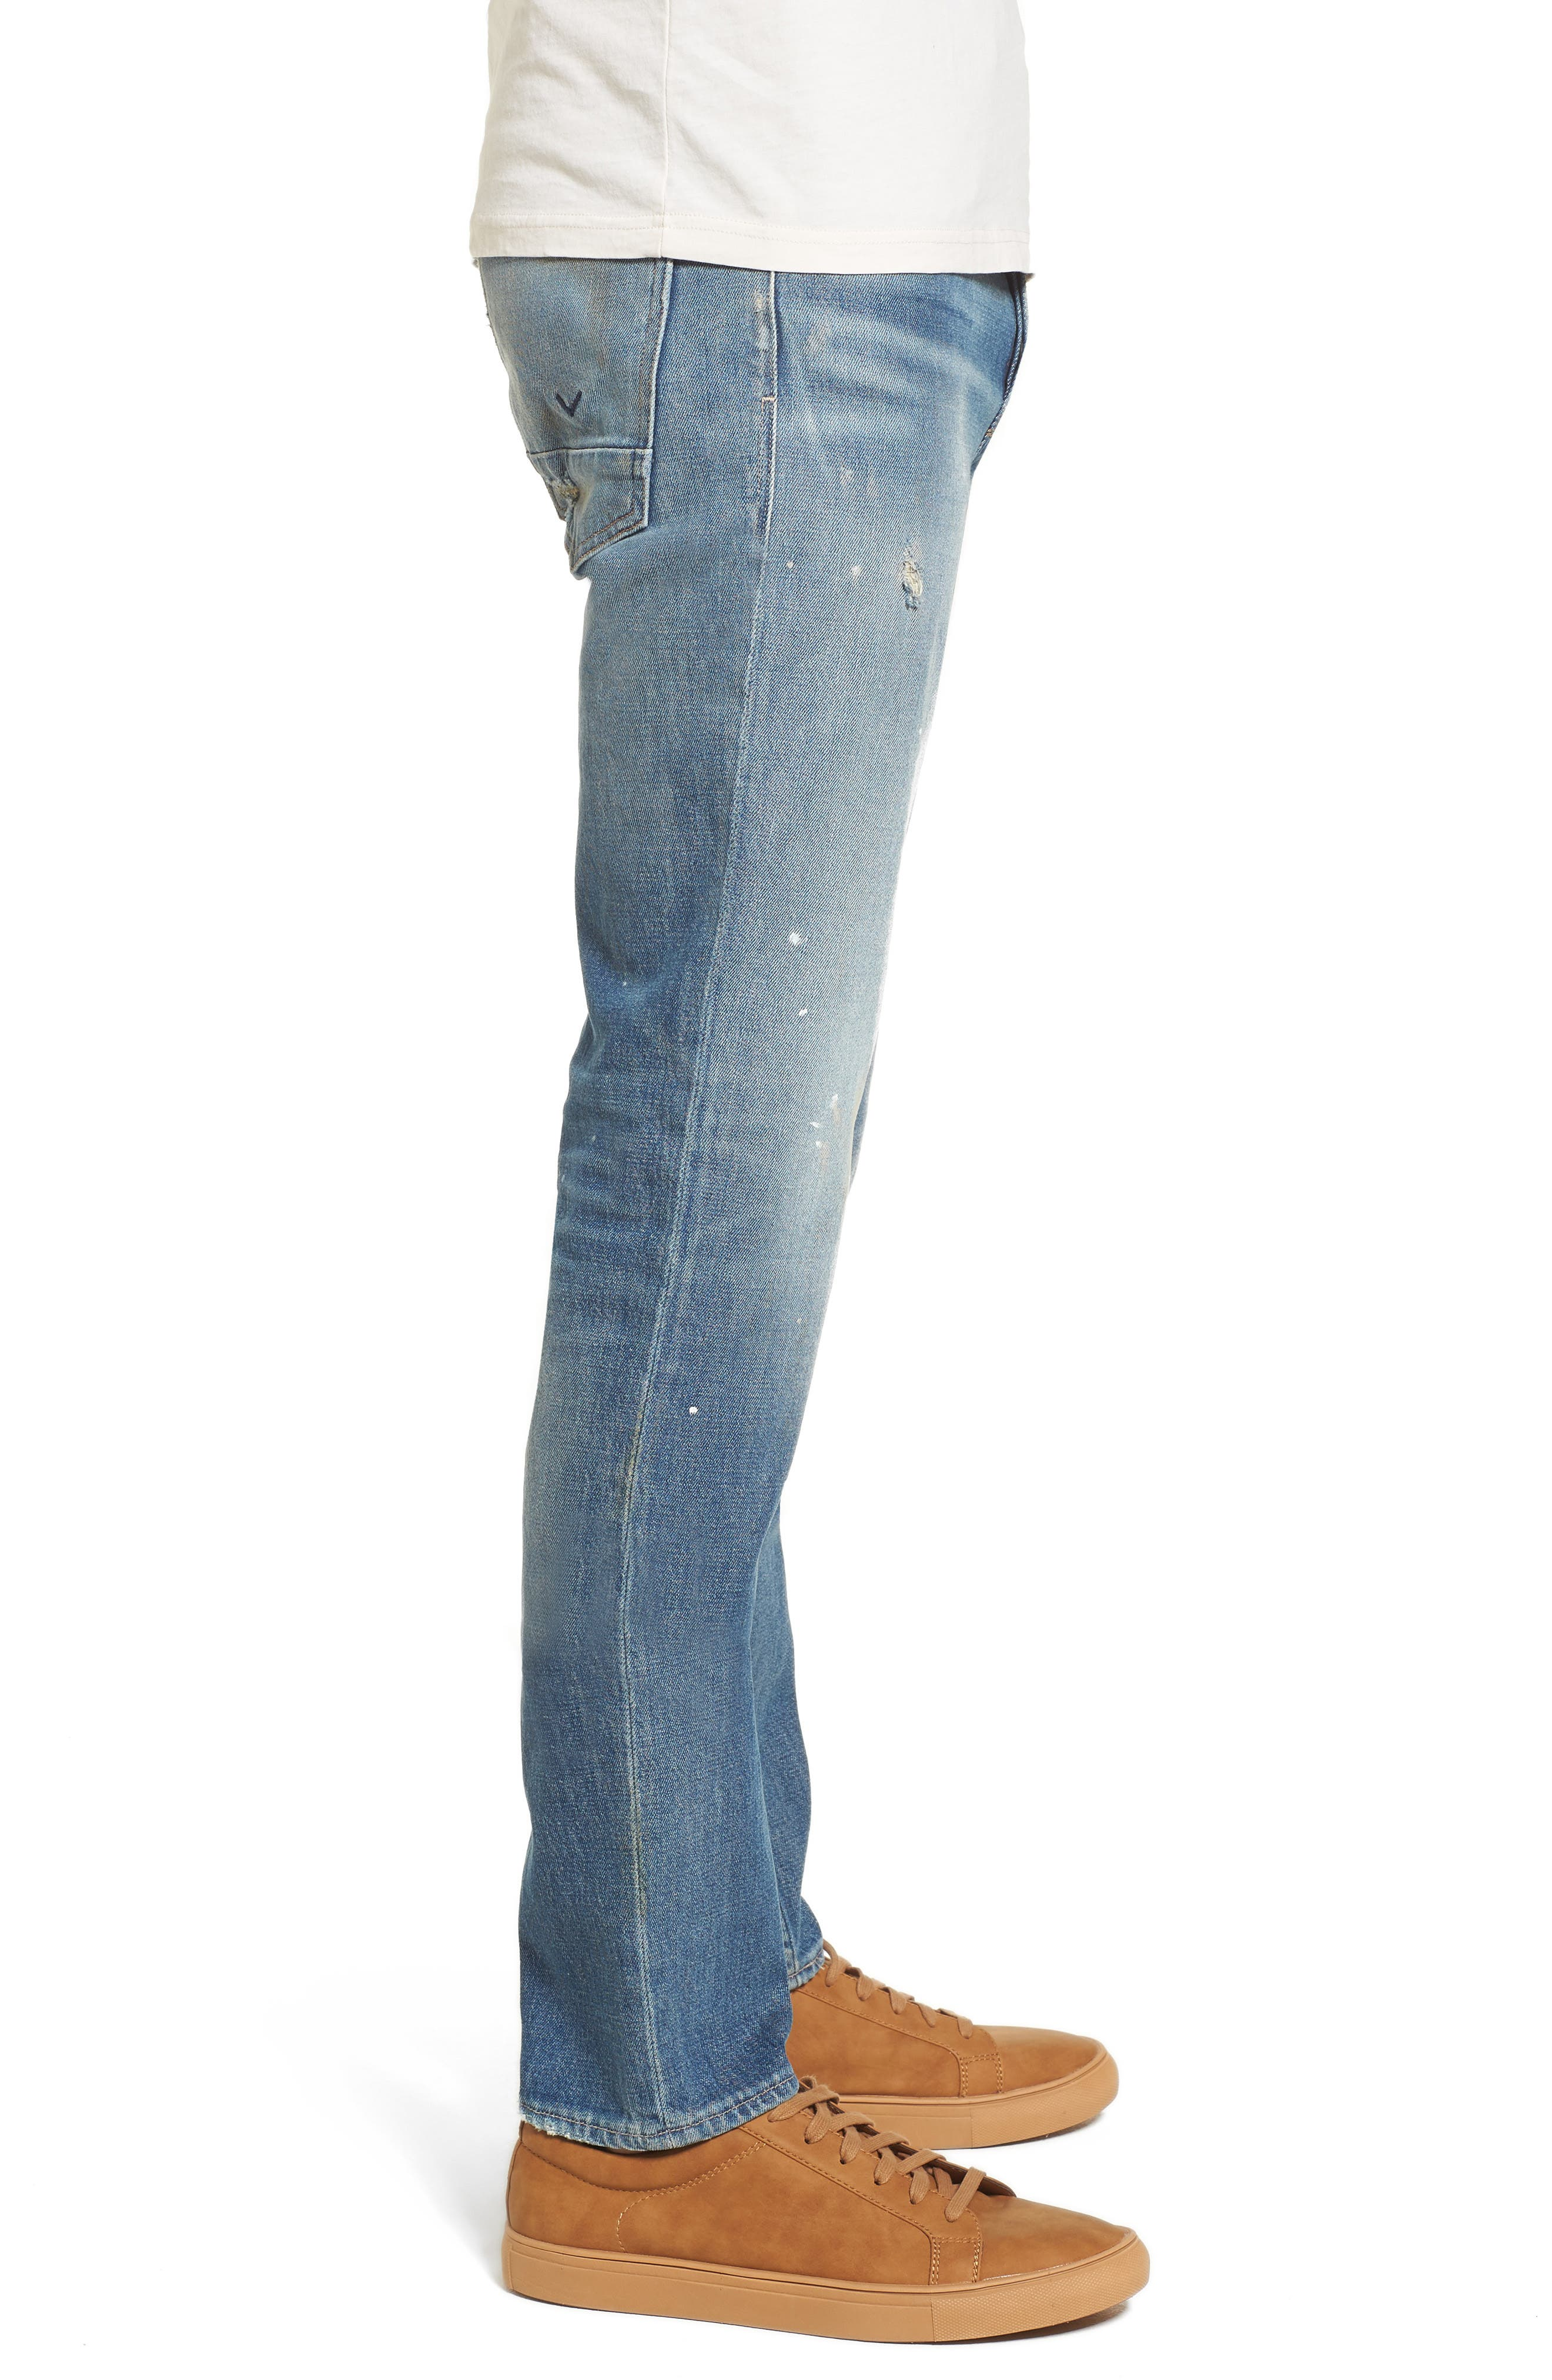 Axl Skinny Fit Jeans,                             Alternate thumbnail 3, color,                             450